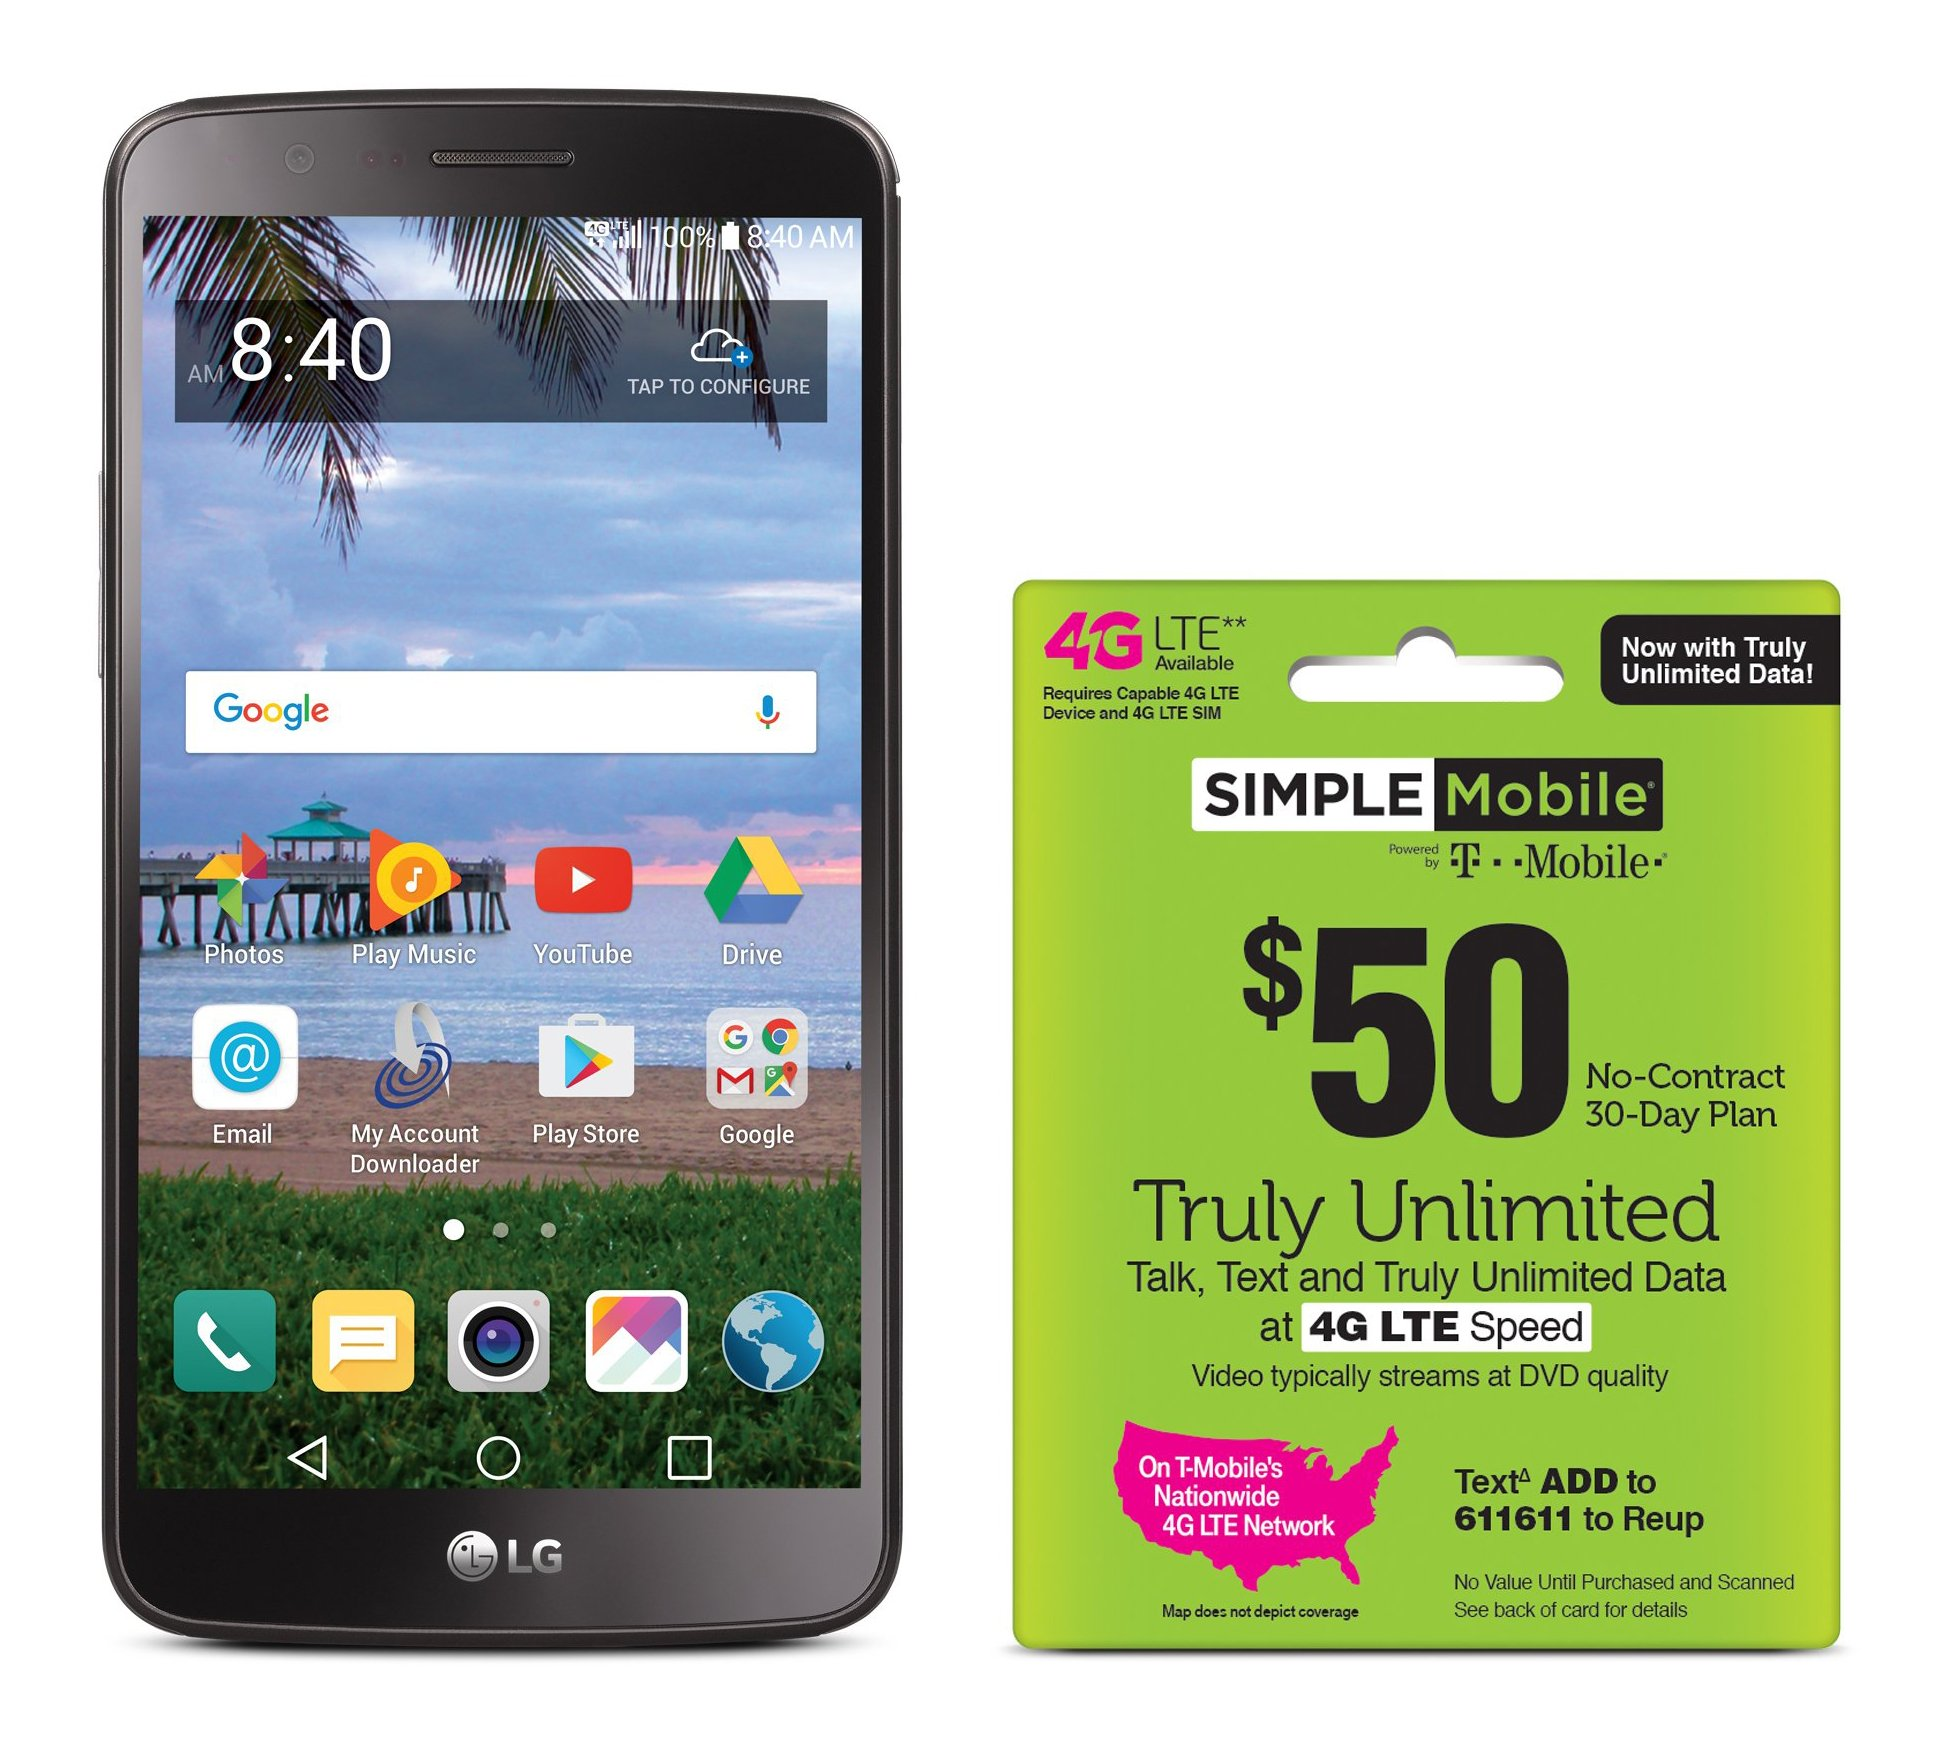 Simple Mobile LG Stylo 3 4G LTE Prepaid Smartphone with Free $50 Unlimited Bundle by Tracfone (Image #1)